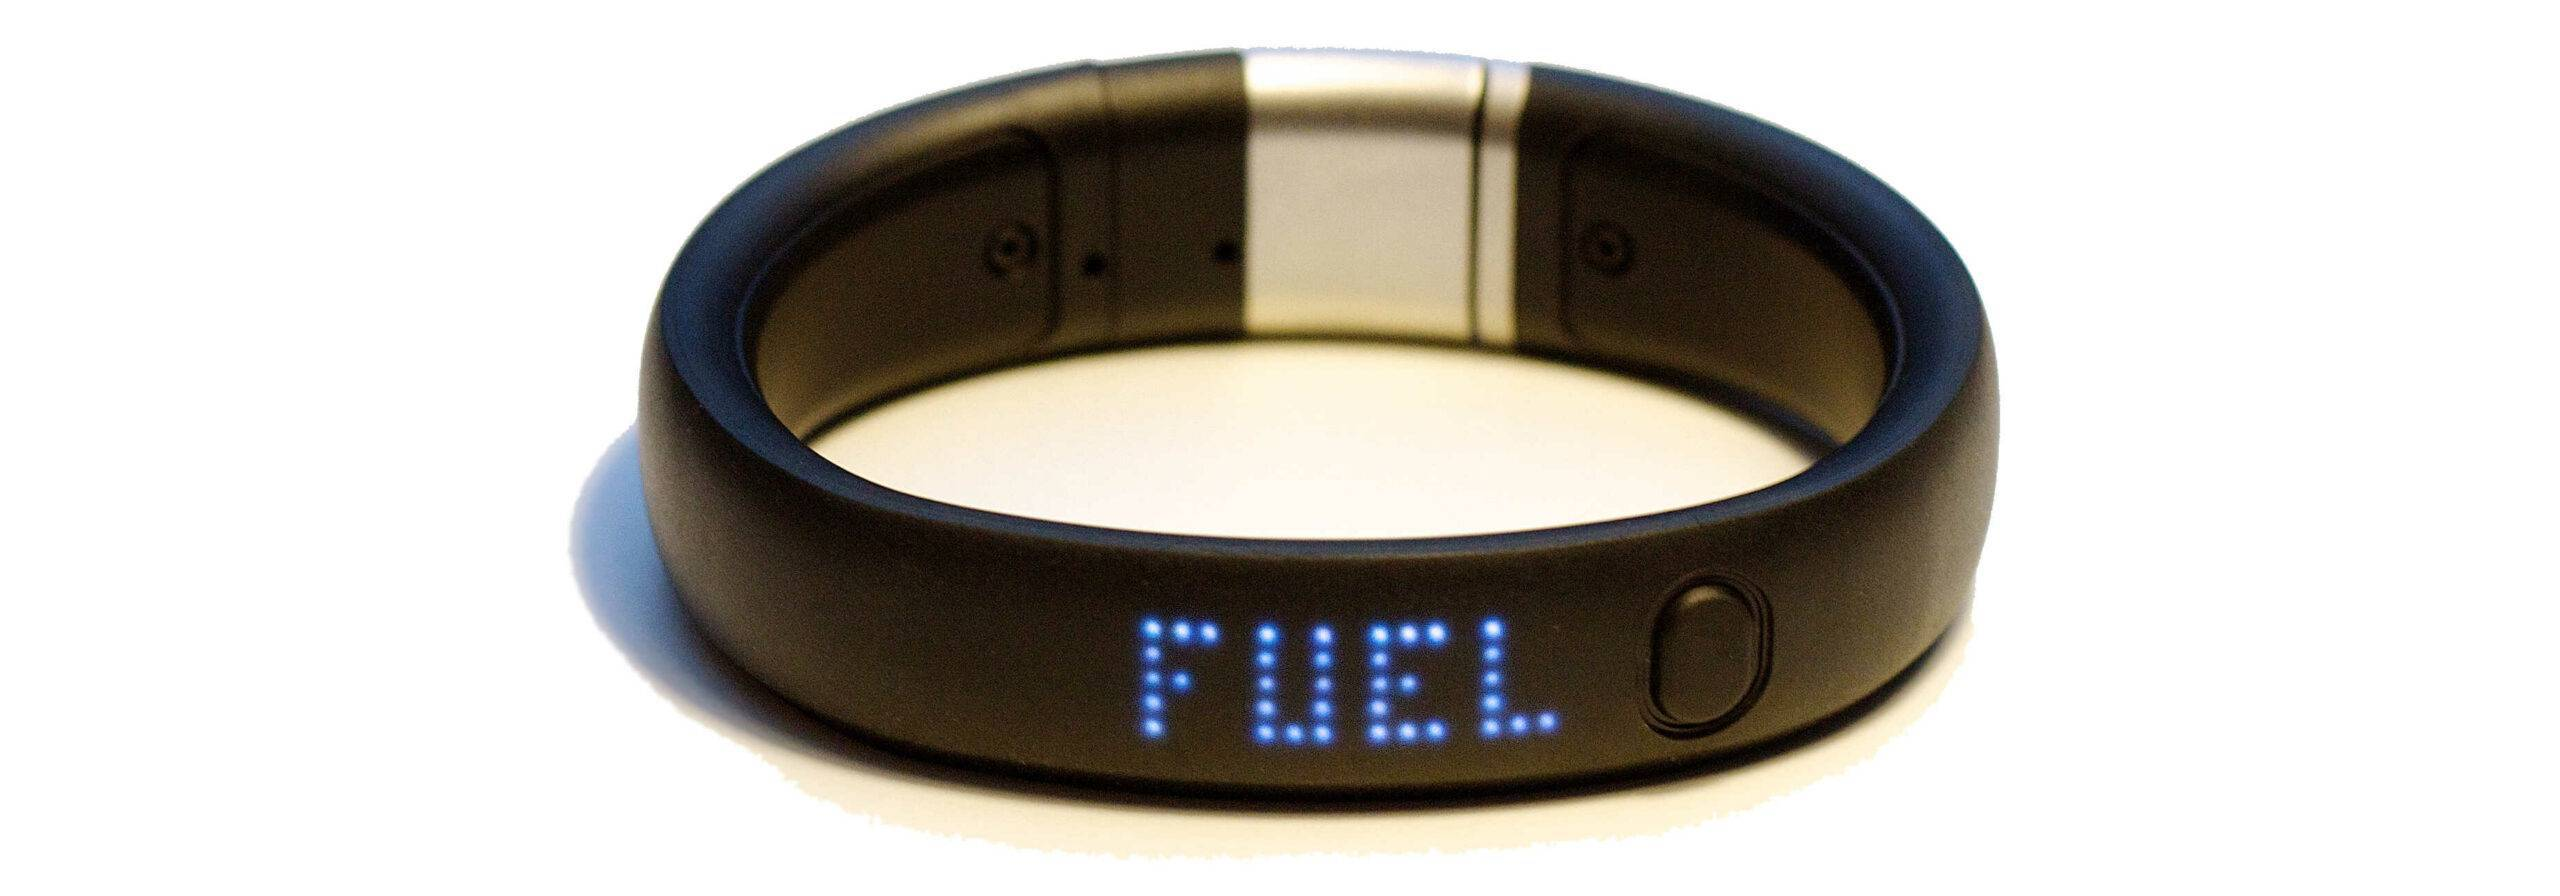 Nike's Fuel Band